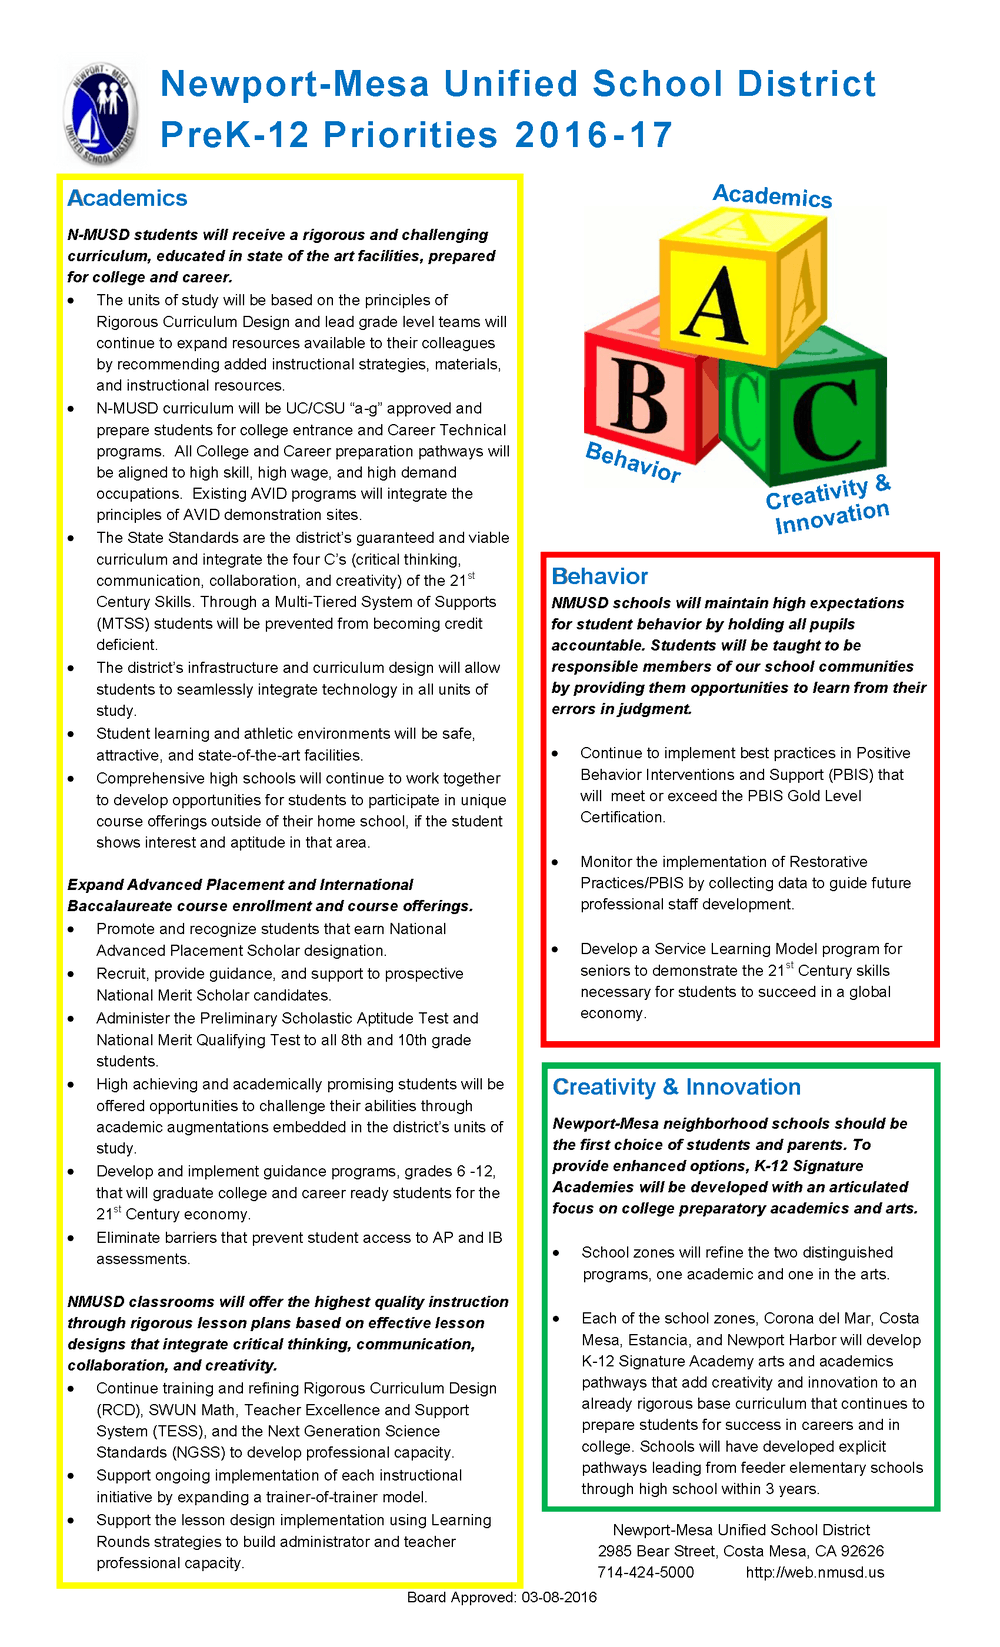 Pre K-12 Board Priorities 2016-17-English.png